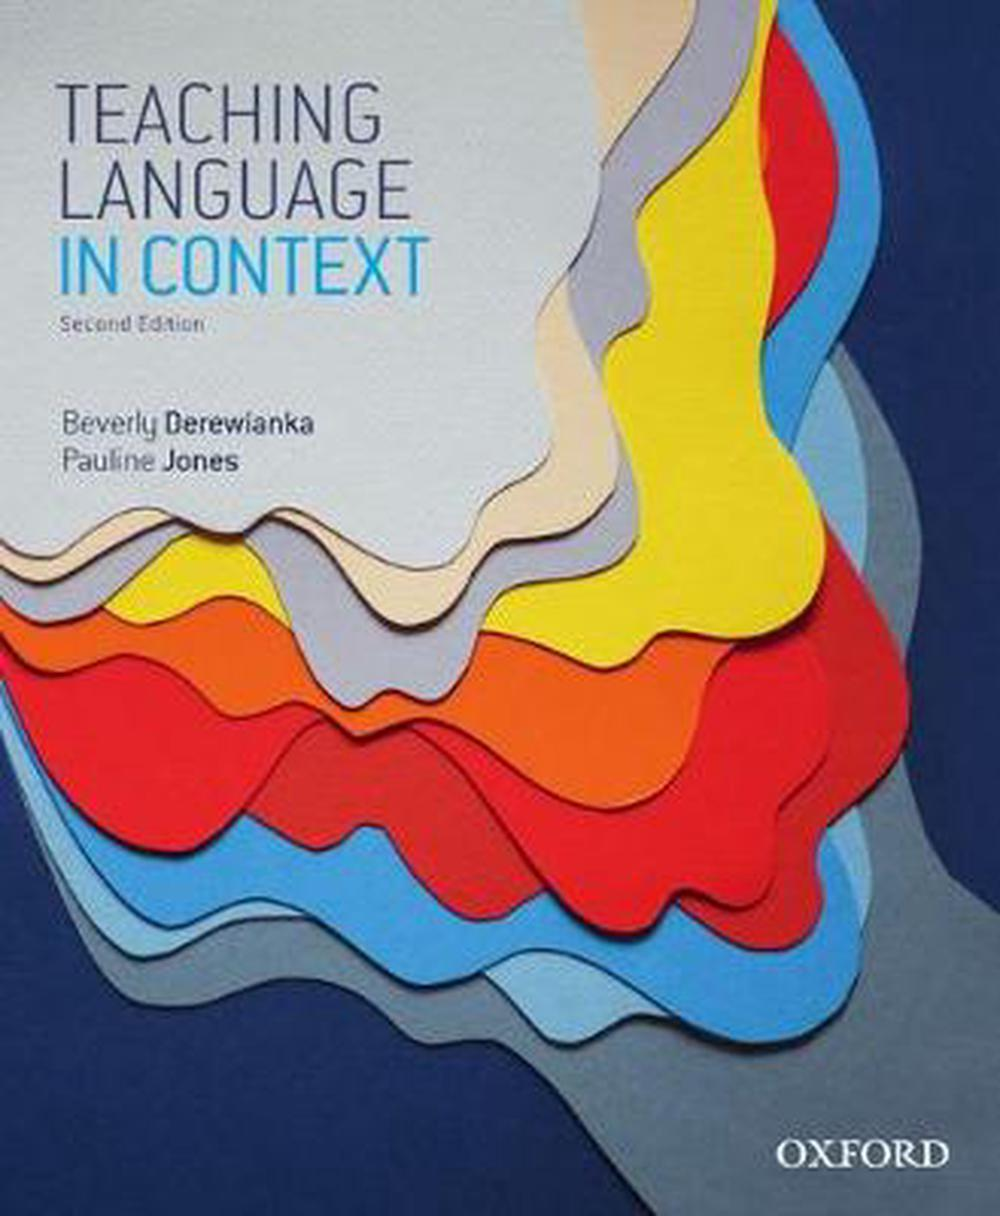 Teaching Language in Context, 2nd Edition